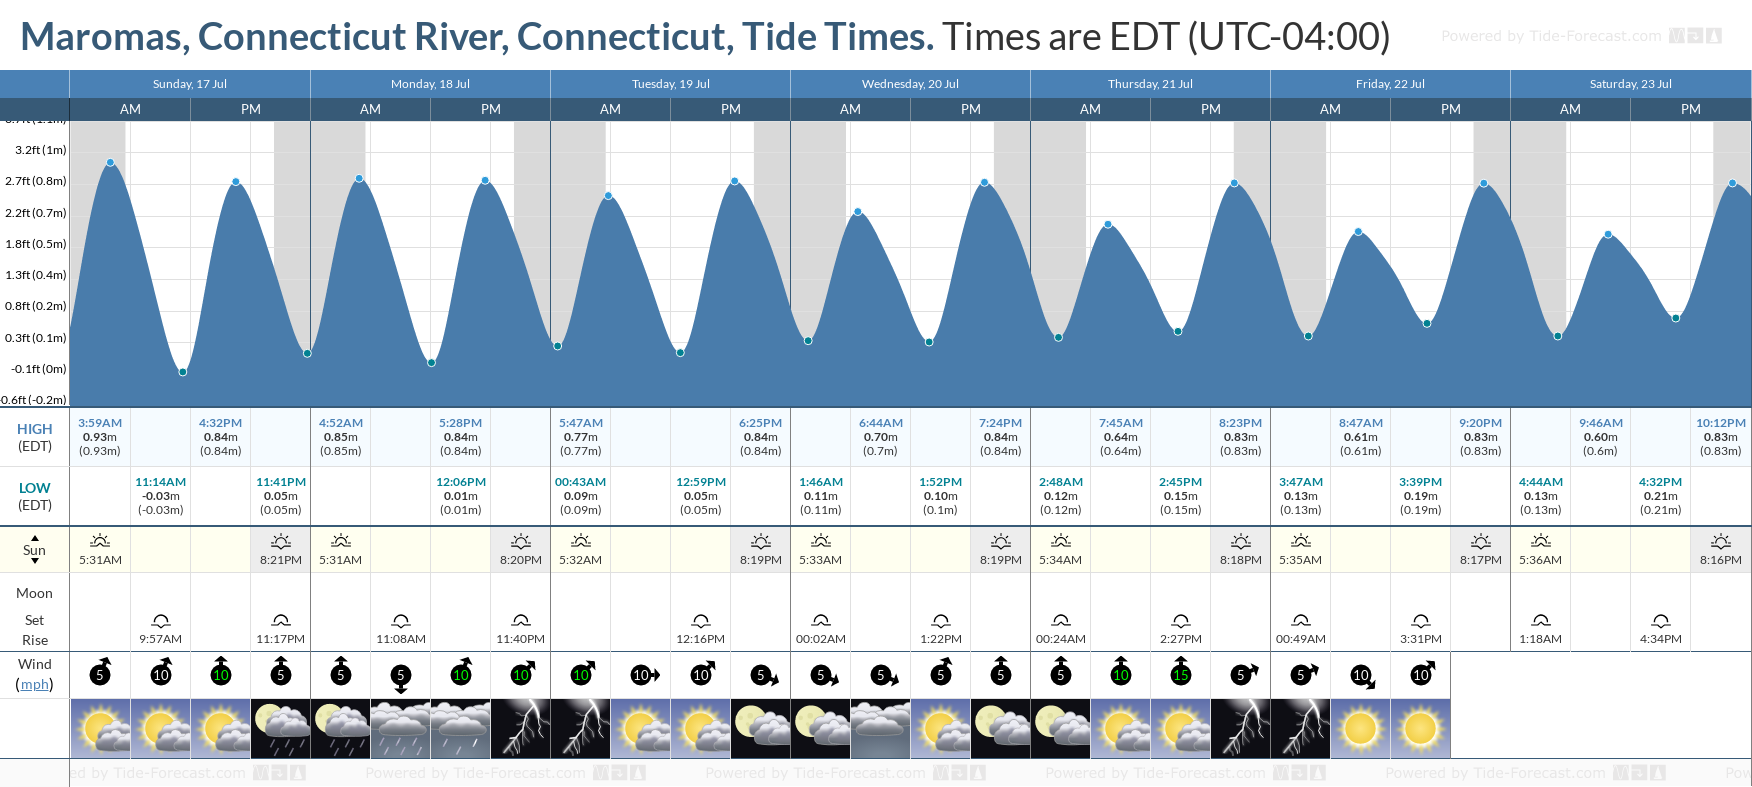 Maromas, Connecticut River, Connecticut Tide Chart including high and low tide tide times for the next 7 days